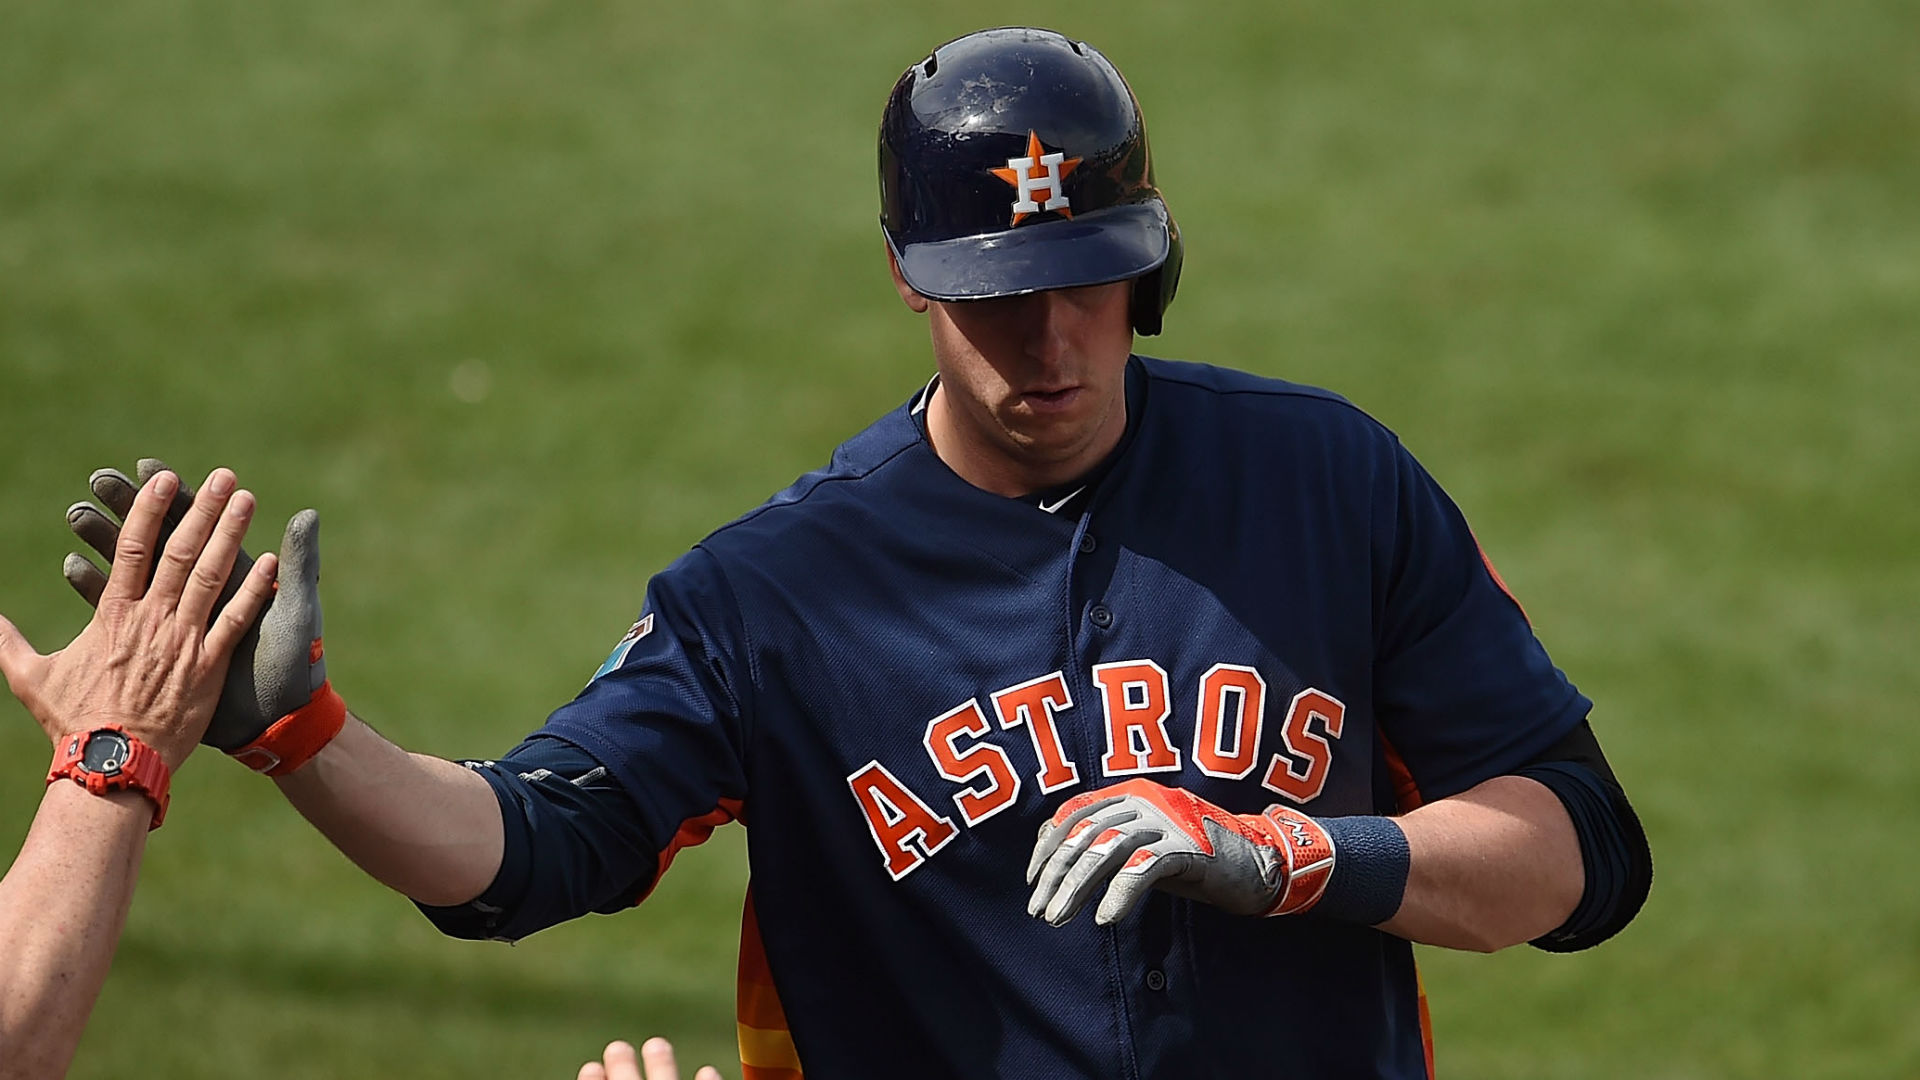 Matt-Duffy-Astros-031316-GETTY-FTR